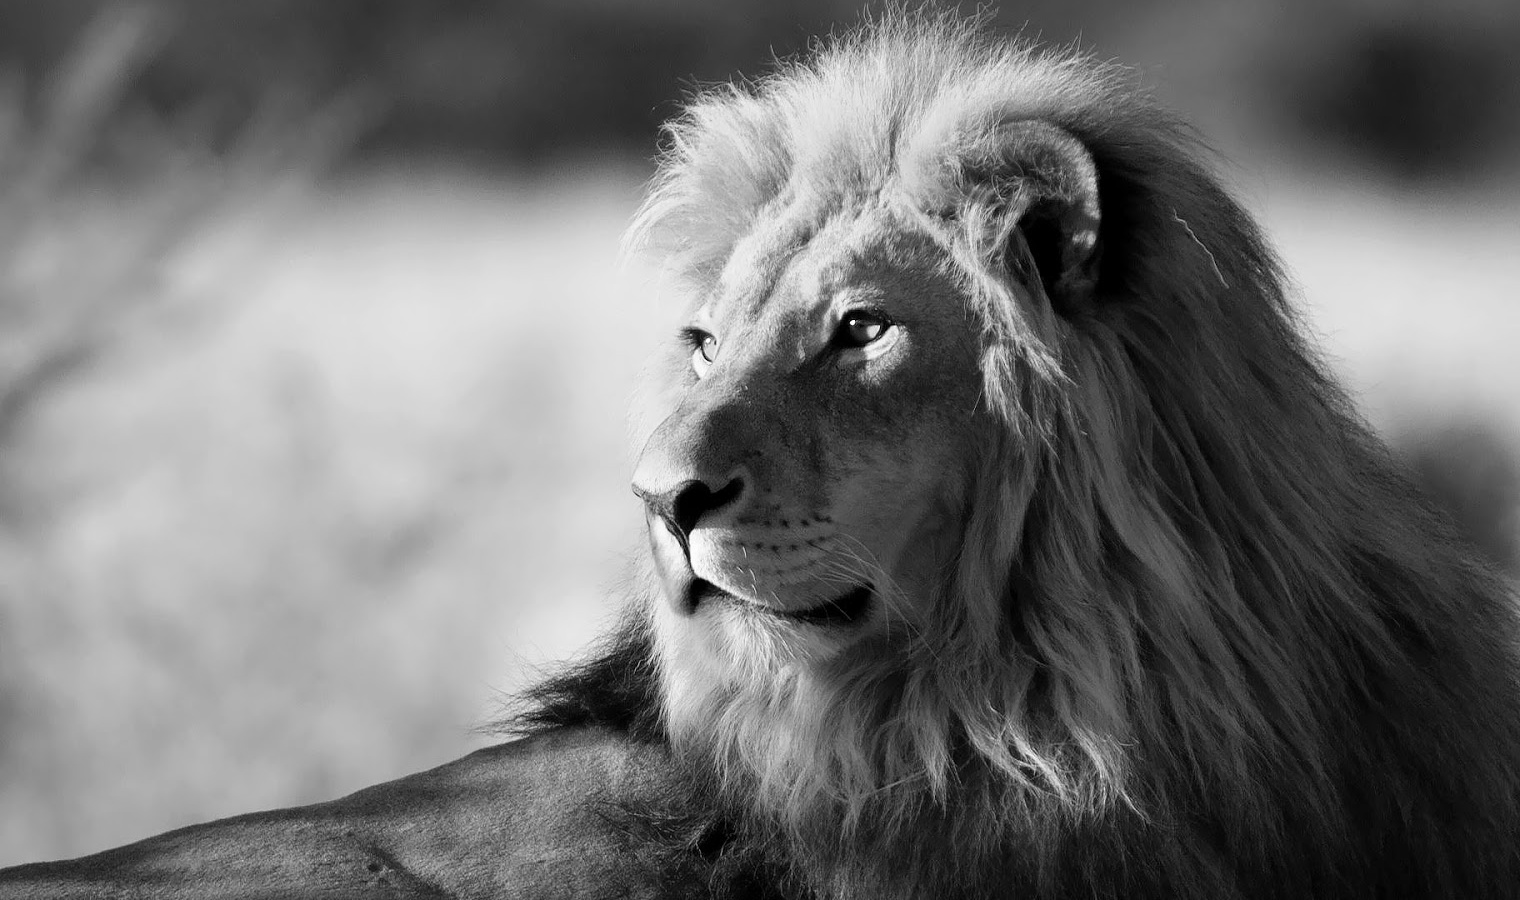 Black and White Picture of a Lion on Animal Picture Society